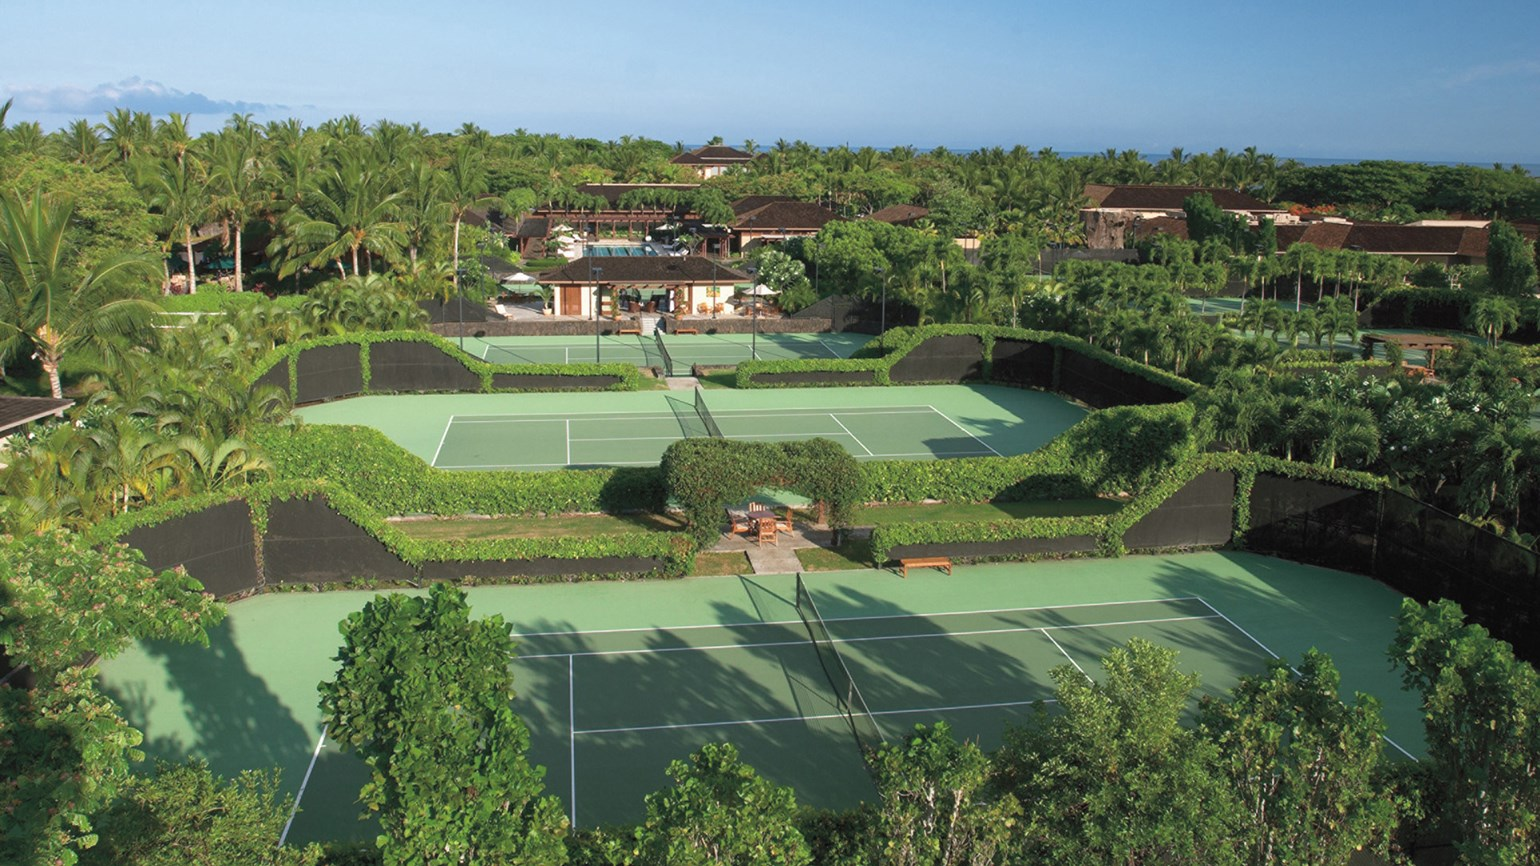 Tennis stars and celebrity chefs coming to Four Seasons Hualalai